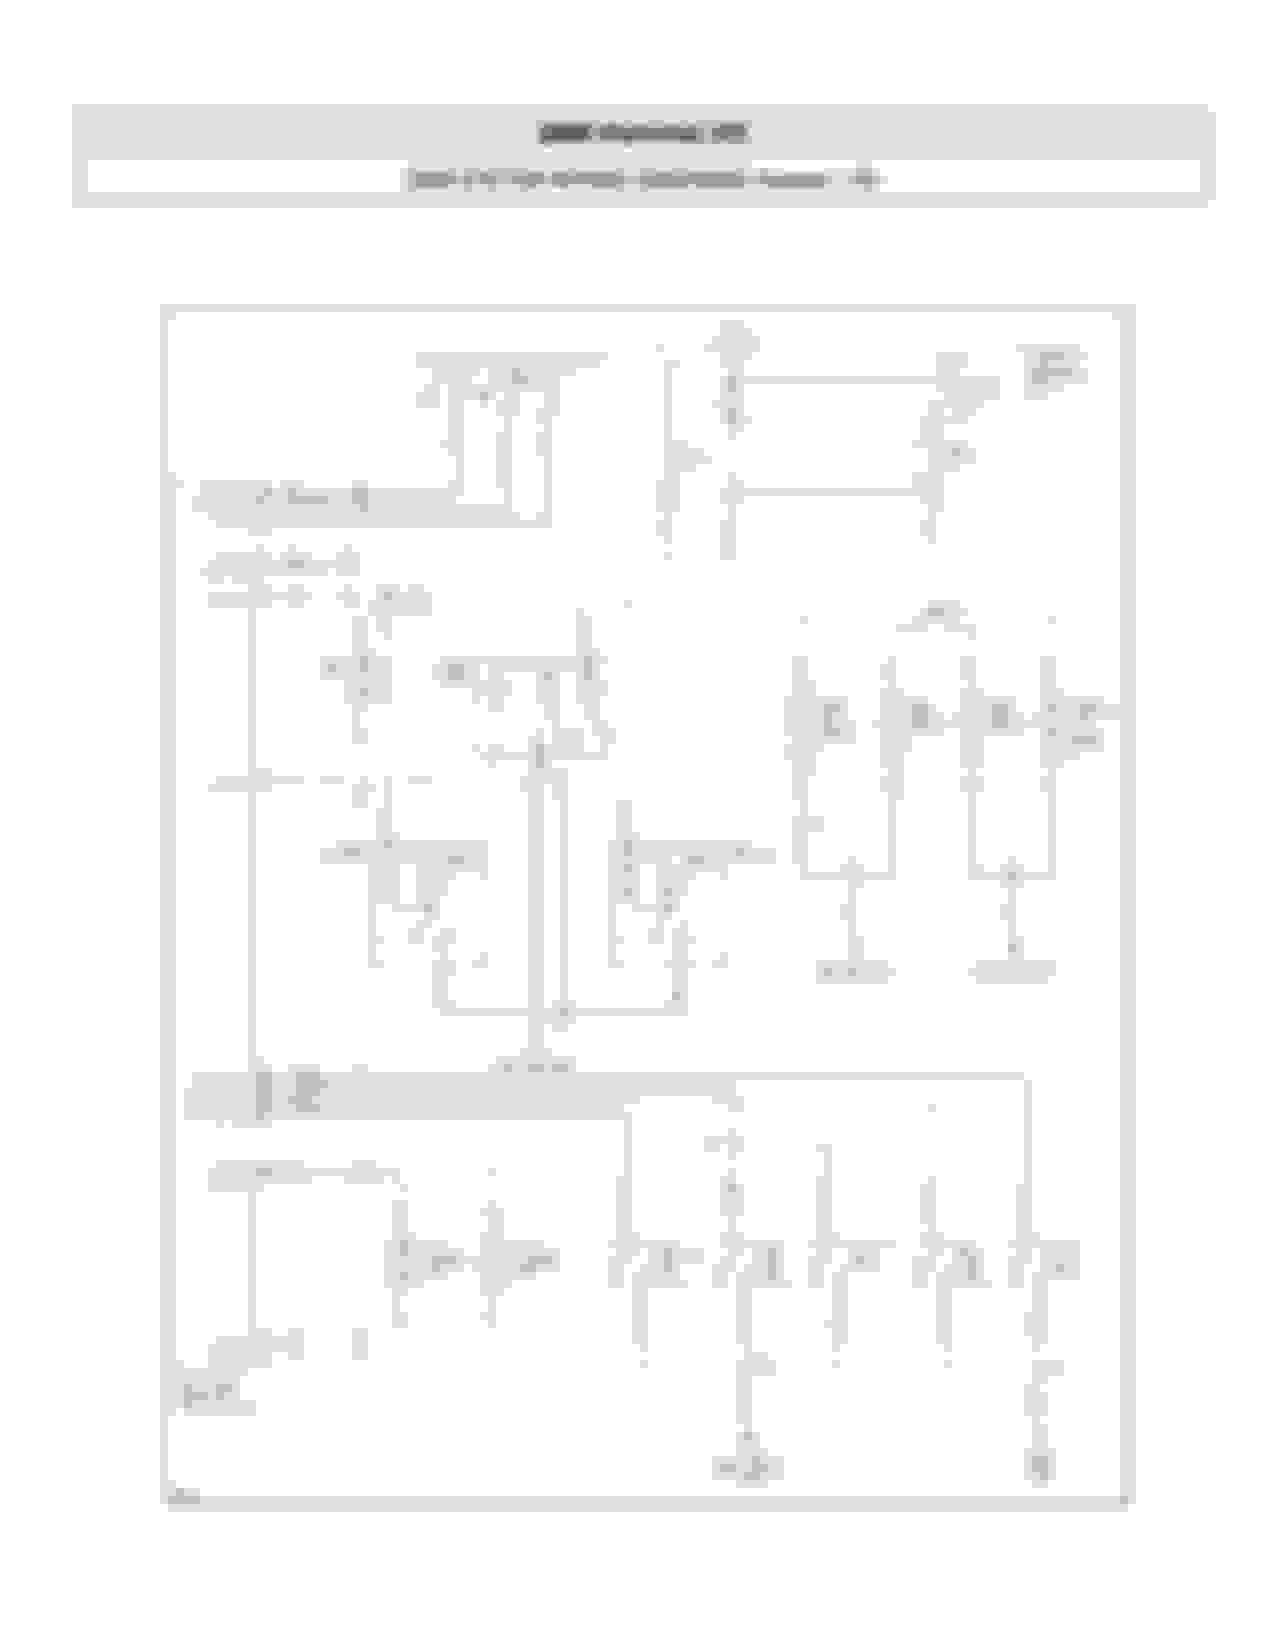 hight resolution of if i were looking for a parasitic draw i would be pulling fuses one by one until i found the circuit and then start from there